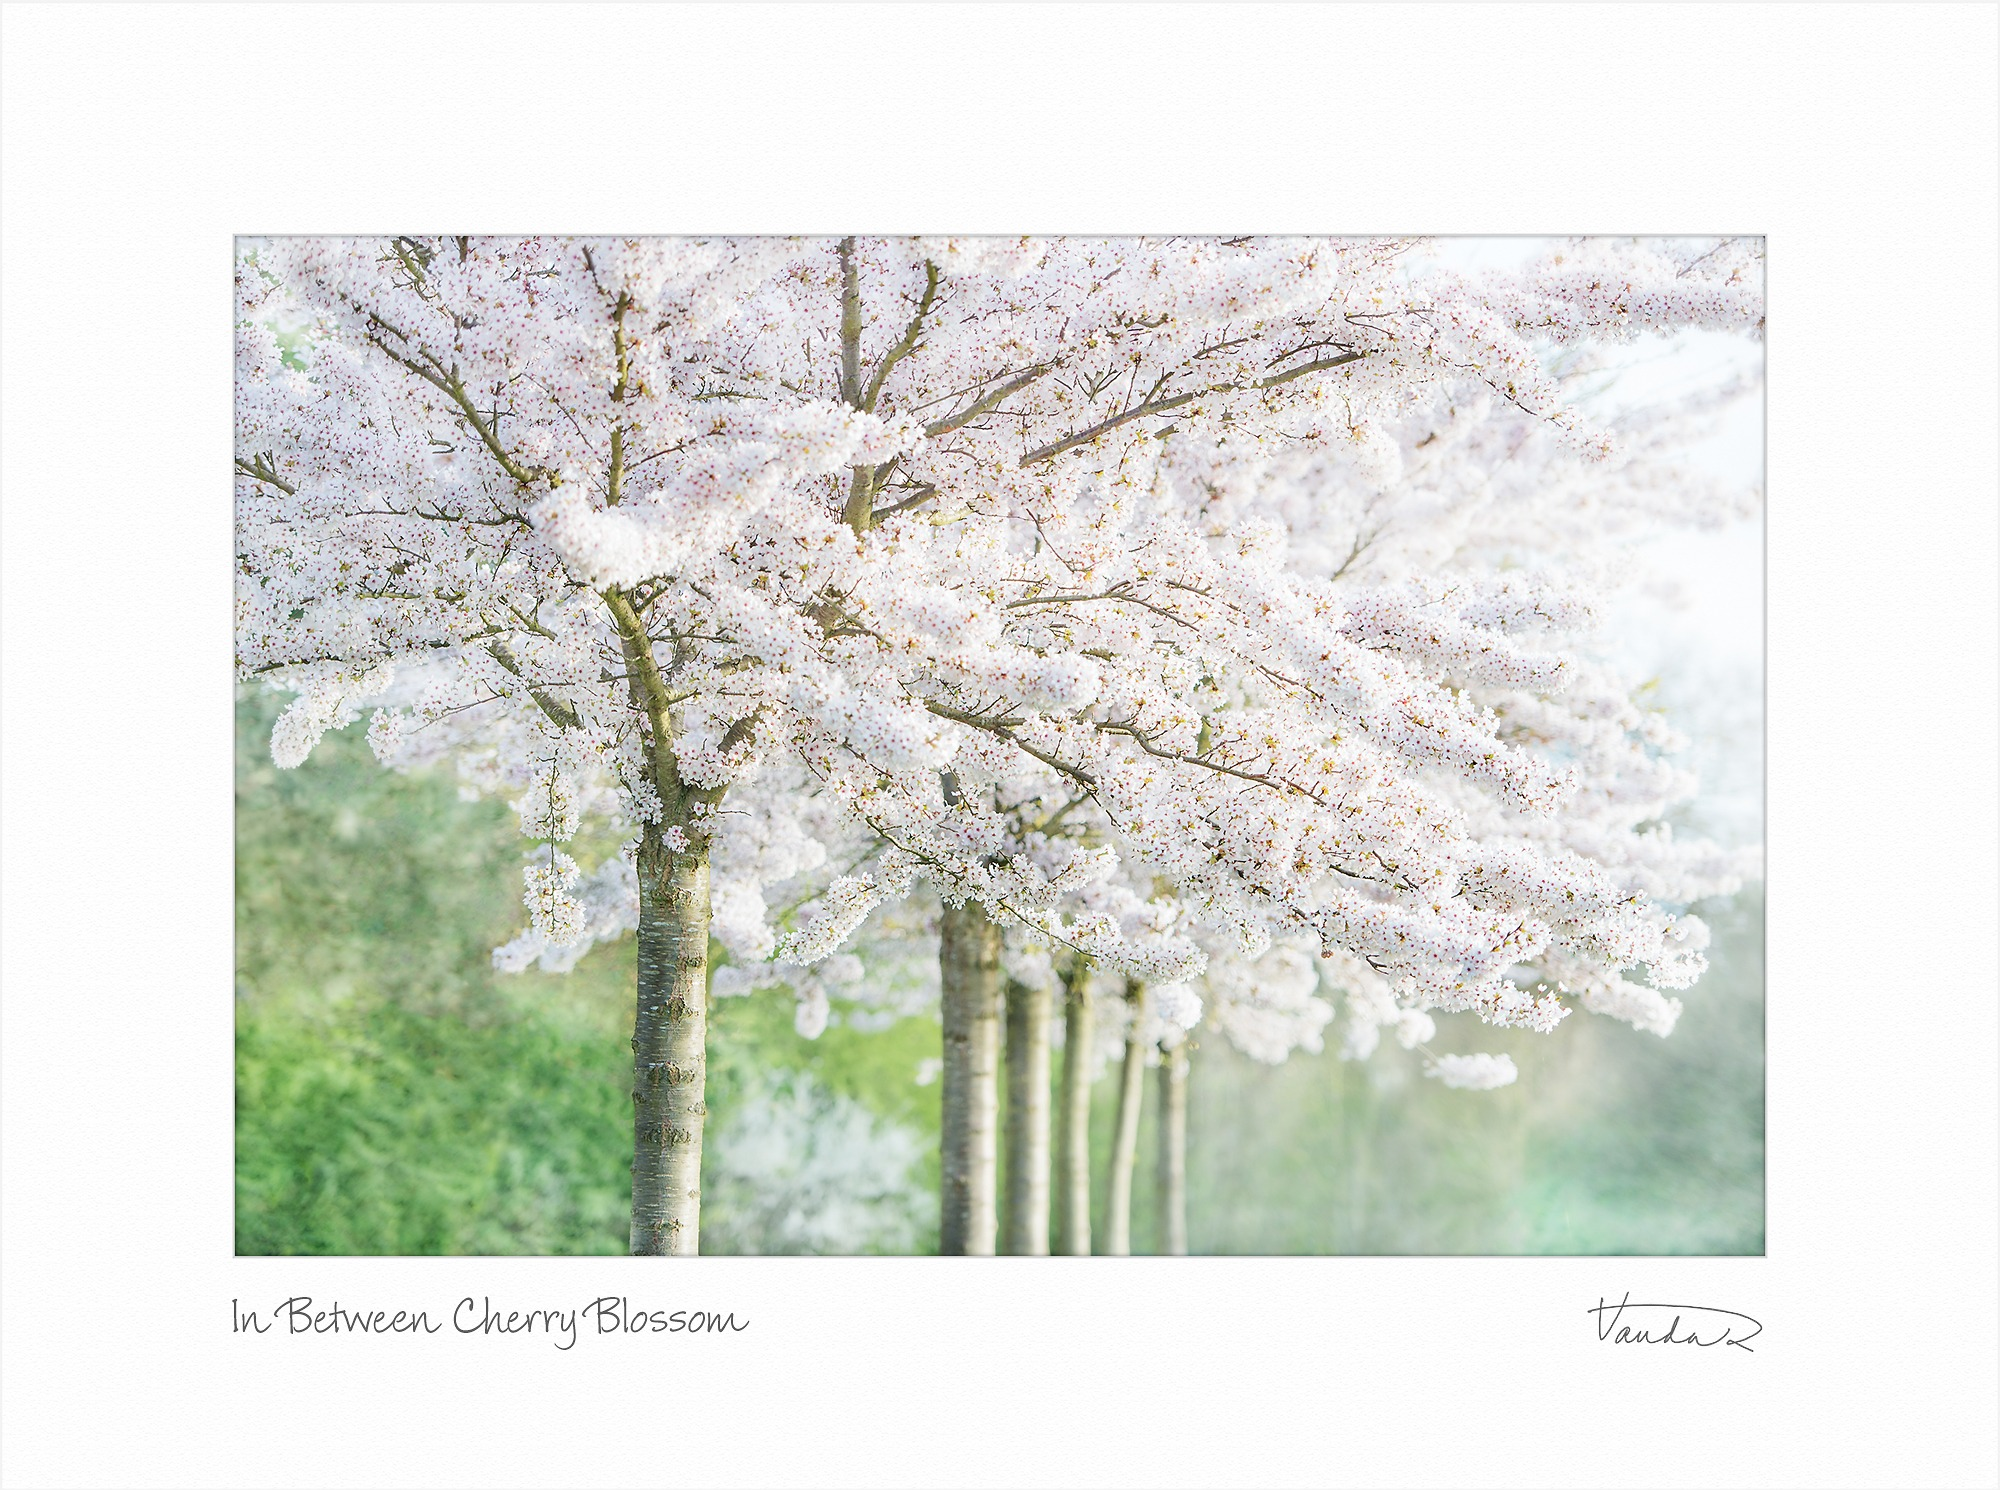 In Between Cherry Blossom